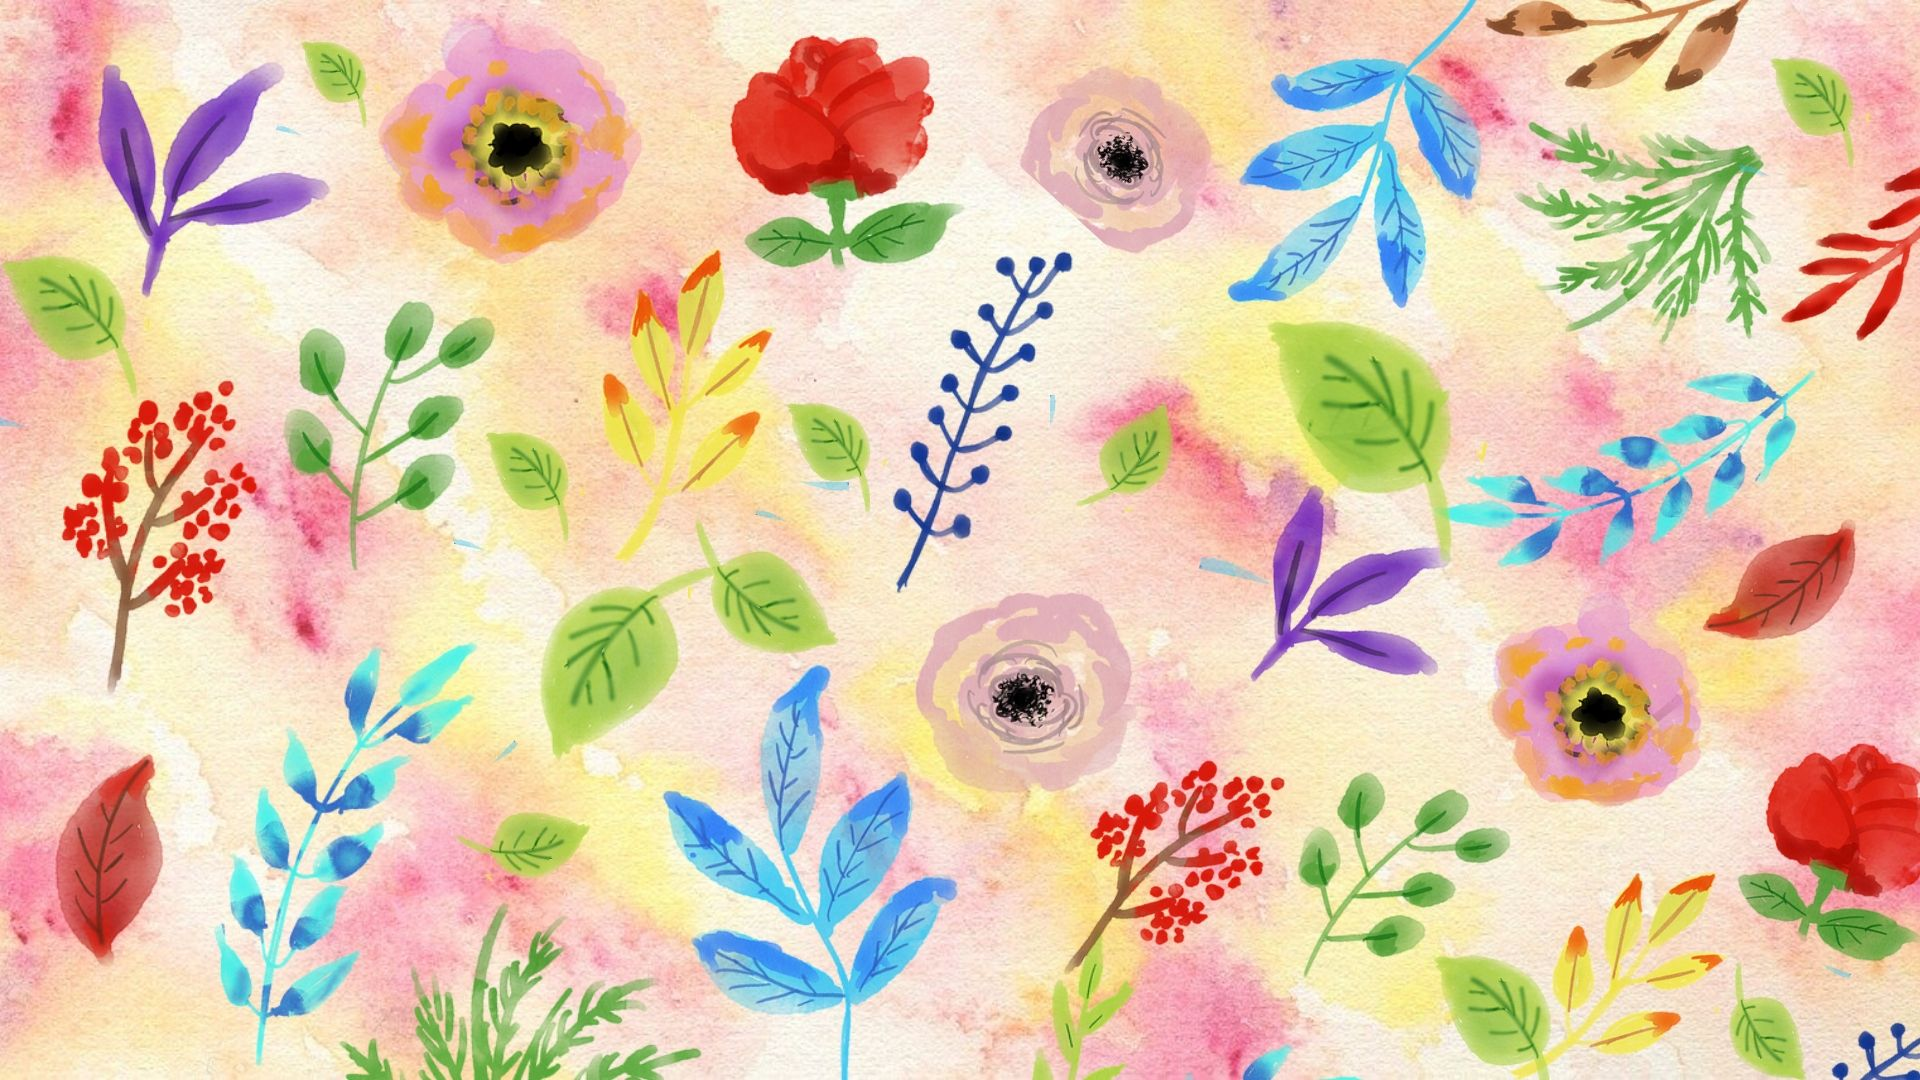 watercolour flowers and leaves on pink and yellow background